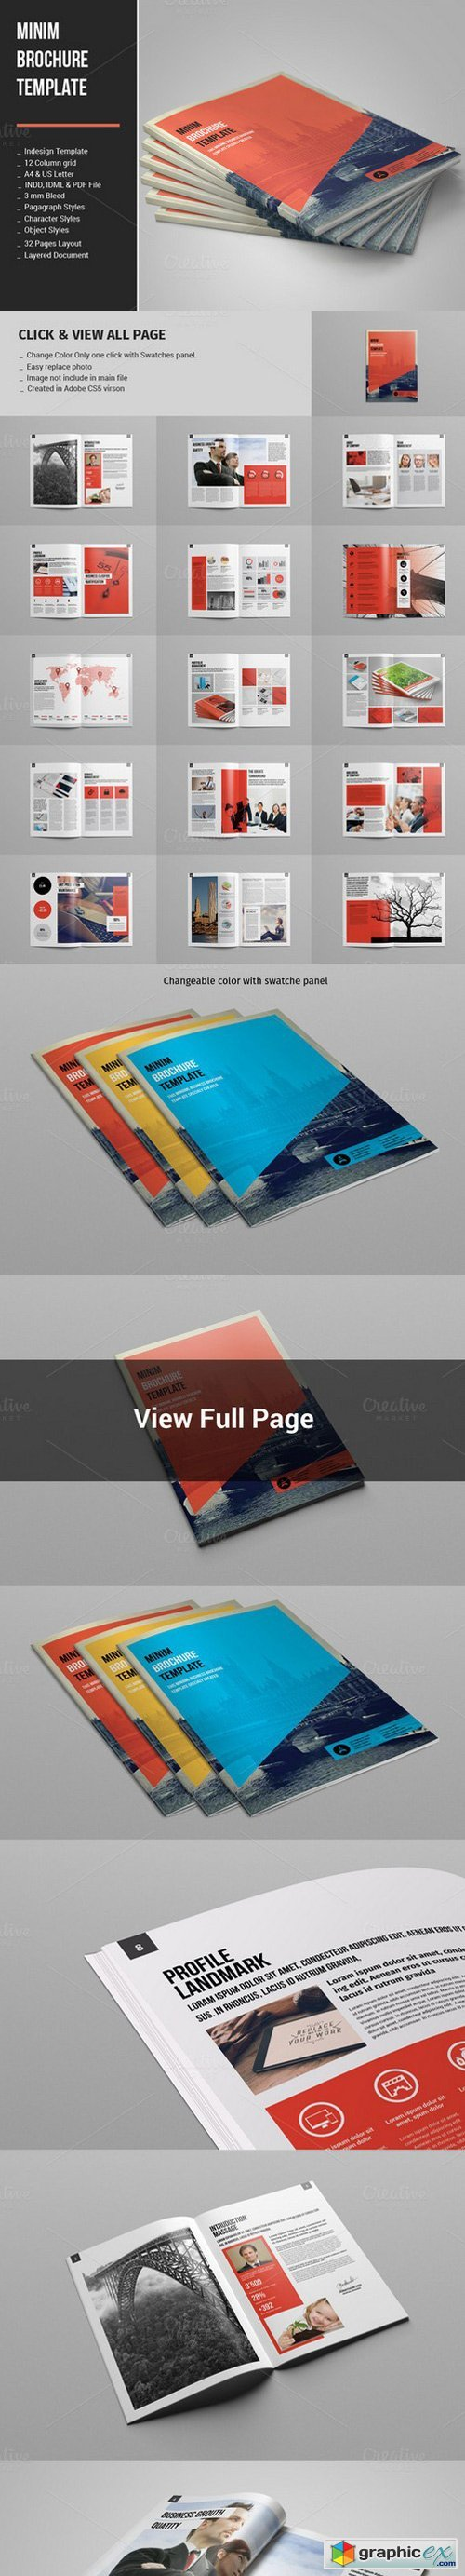 Brochure And Magazine - Free Download Vector Stock Image Photoshop Icon